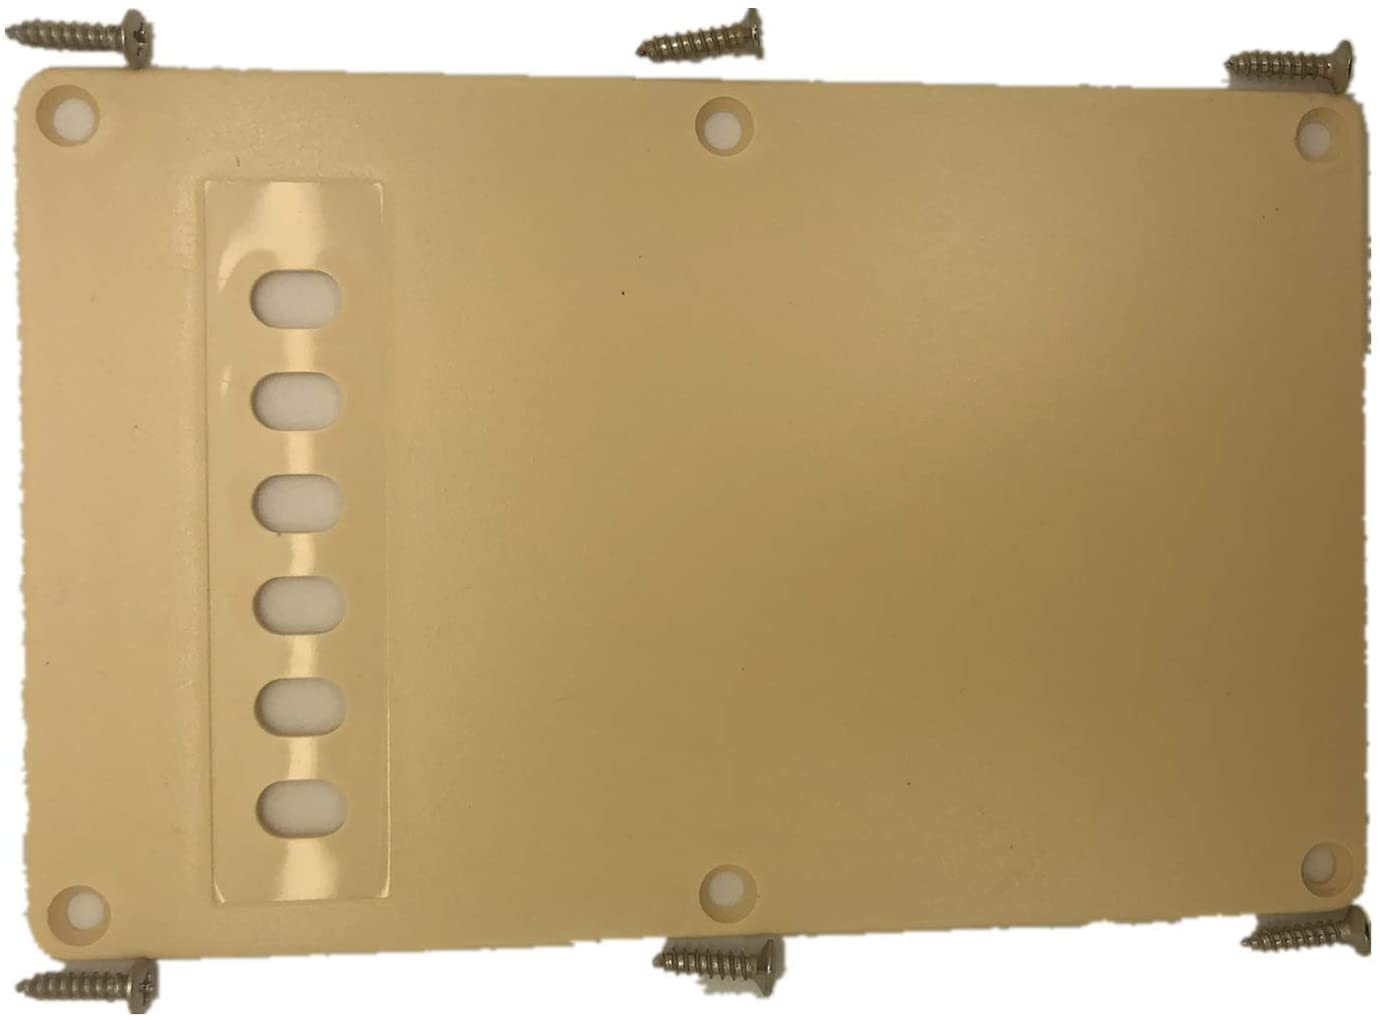 6 Hole Guitar Back Plate Tremolo Cavity Cover Backplate for China Made Squier Guitar Parts,3Ply Cream